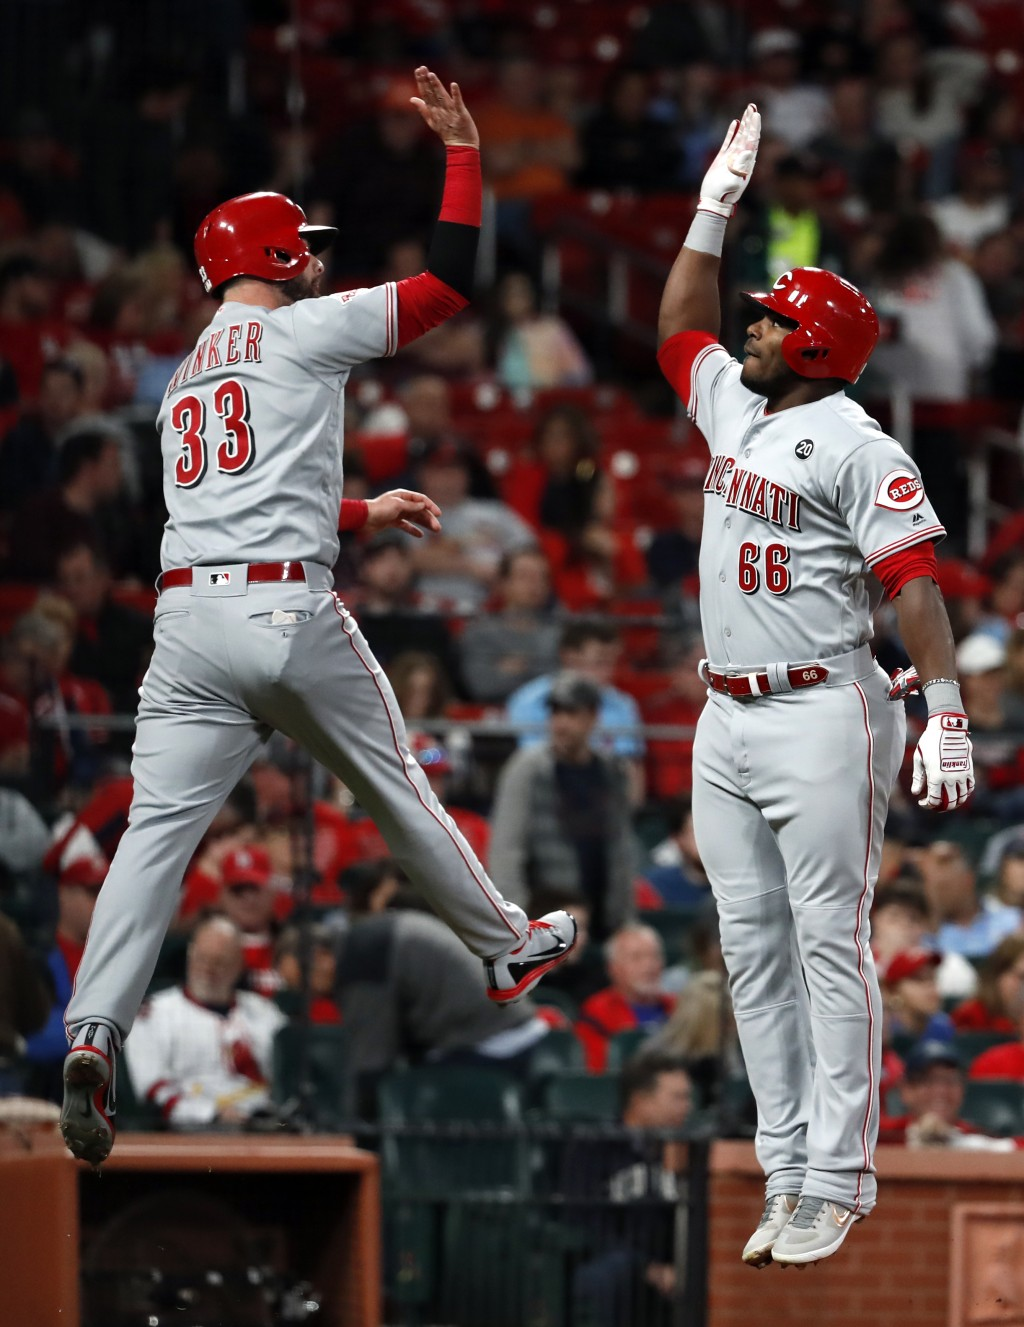 Cincinnati Reds' Yasiel Puig (66) is congratulated by teammate Jesse Winker (33) after hitting a two-run home run during the eighth inning of a baseba